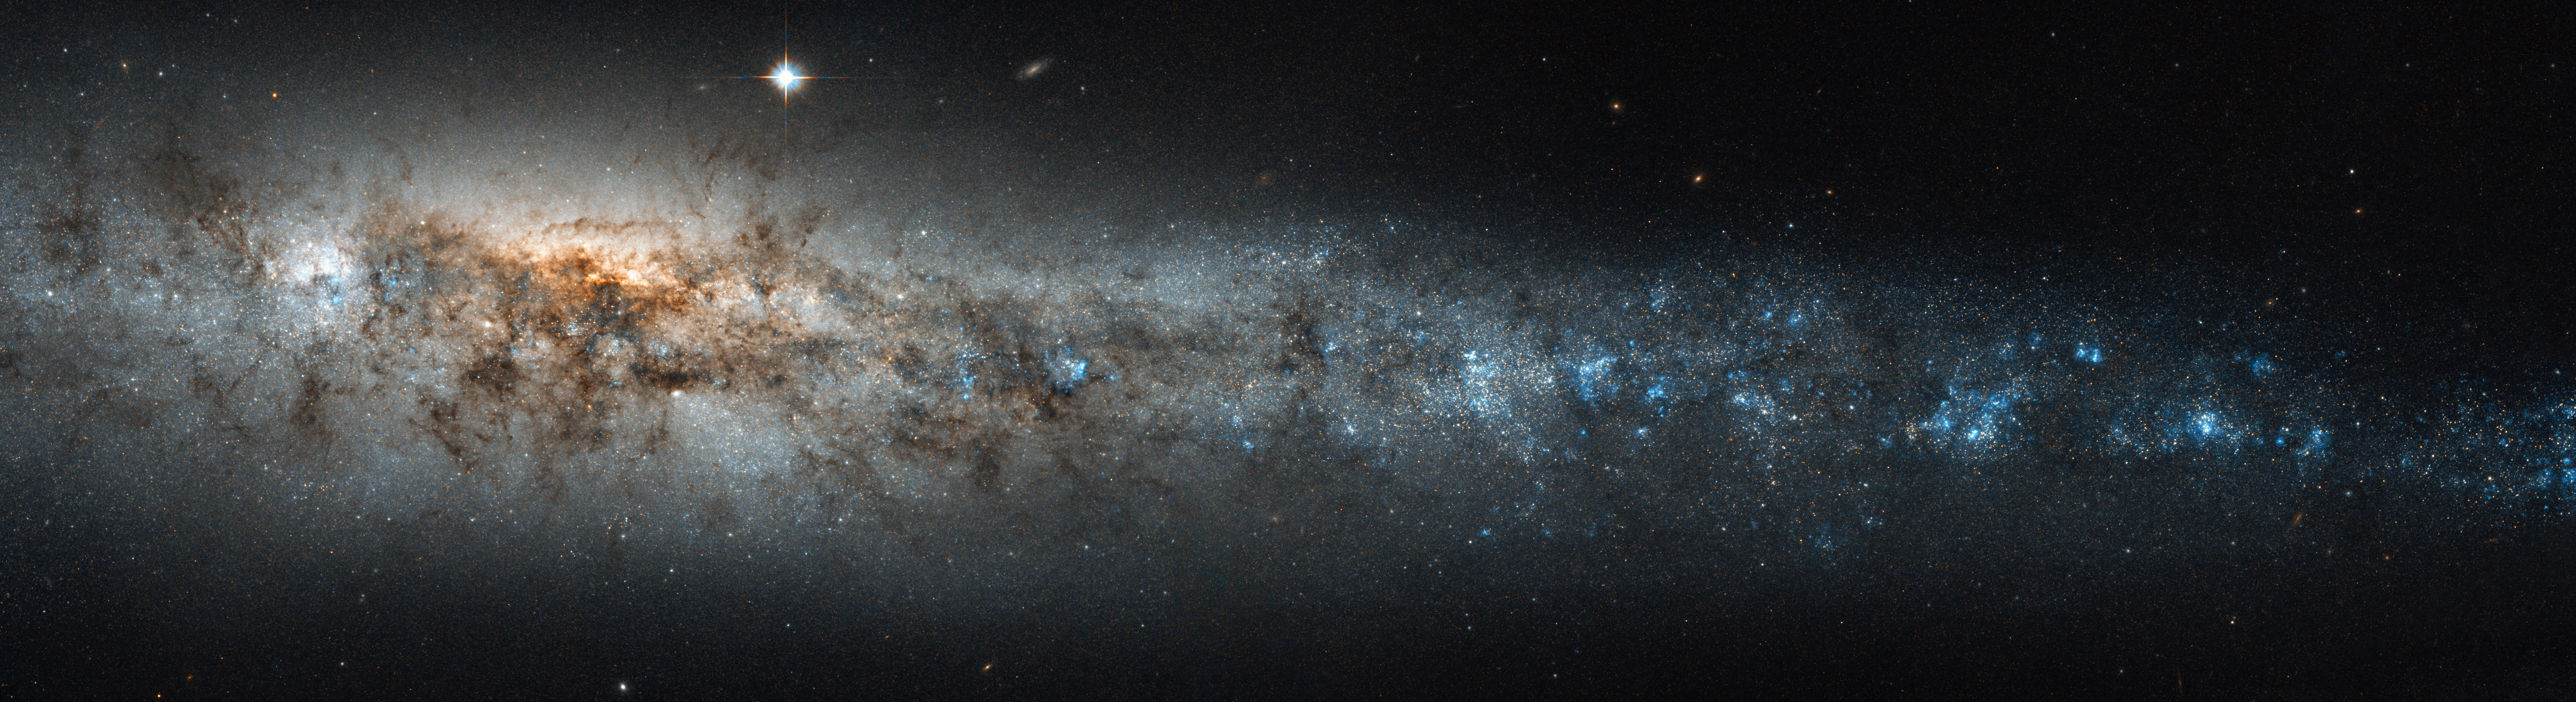 nasa galaxy pictures high resolution - photo #9